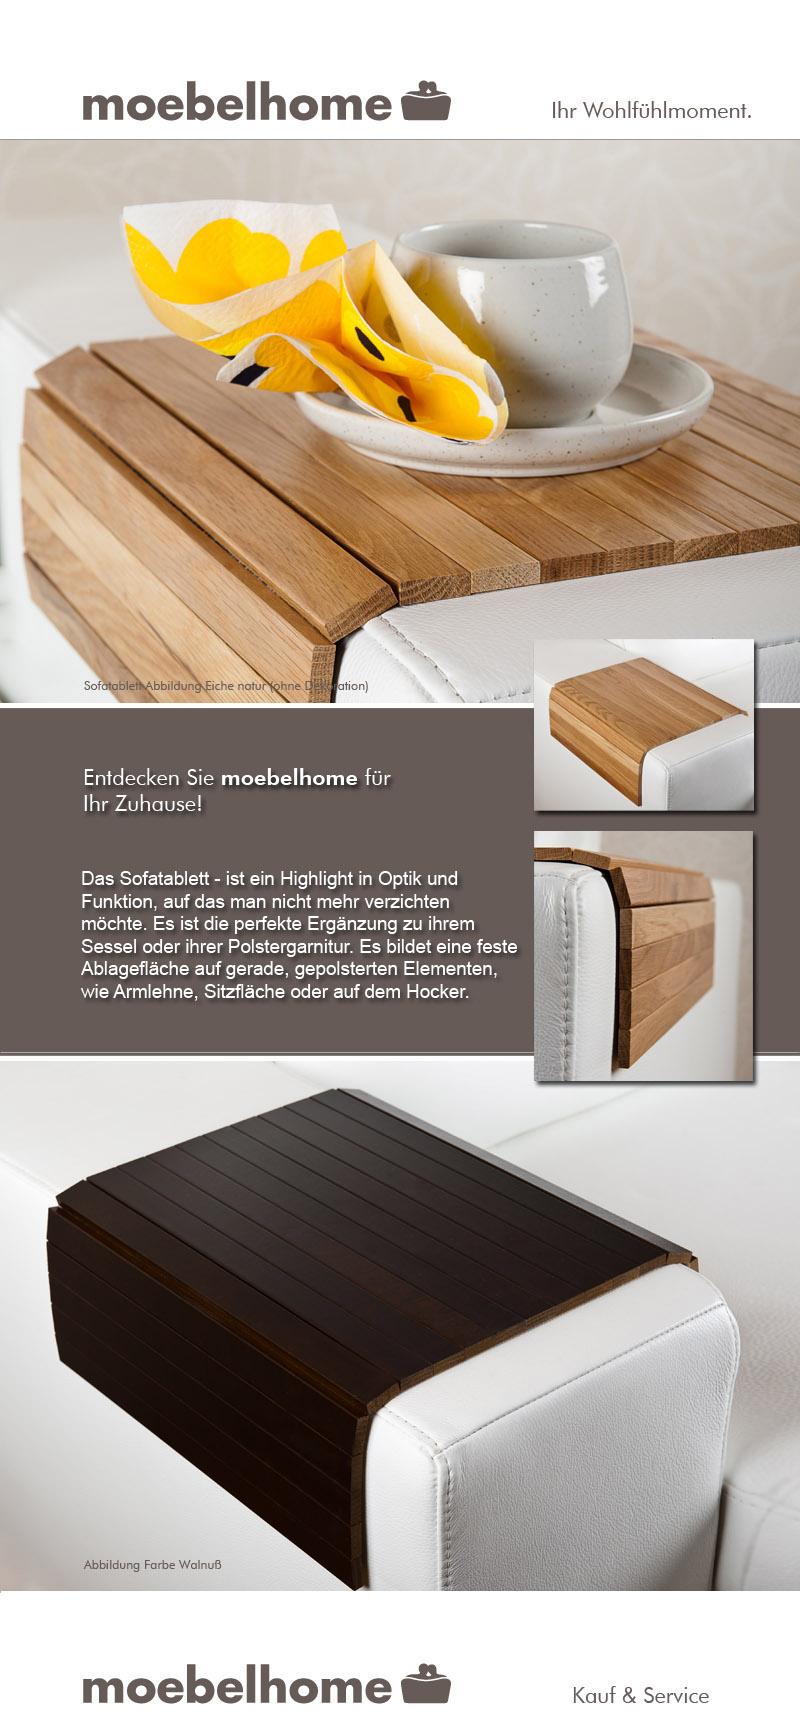 sofatablett hocker sofa couch armlehne ablage tablett massiv eiche holz neu. Black Bedroom Furniture Sets. Home Design Ideas